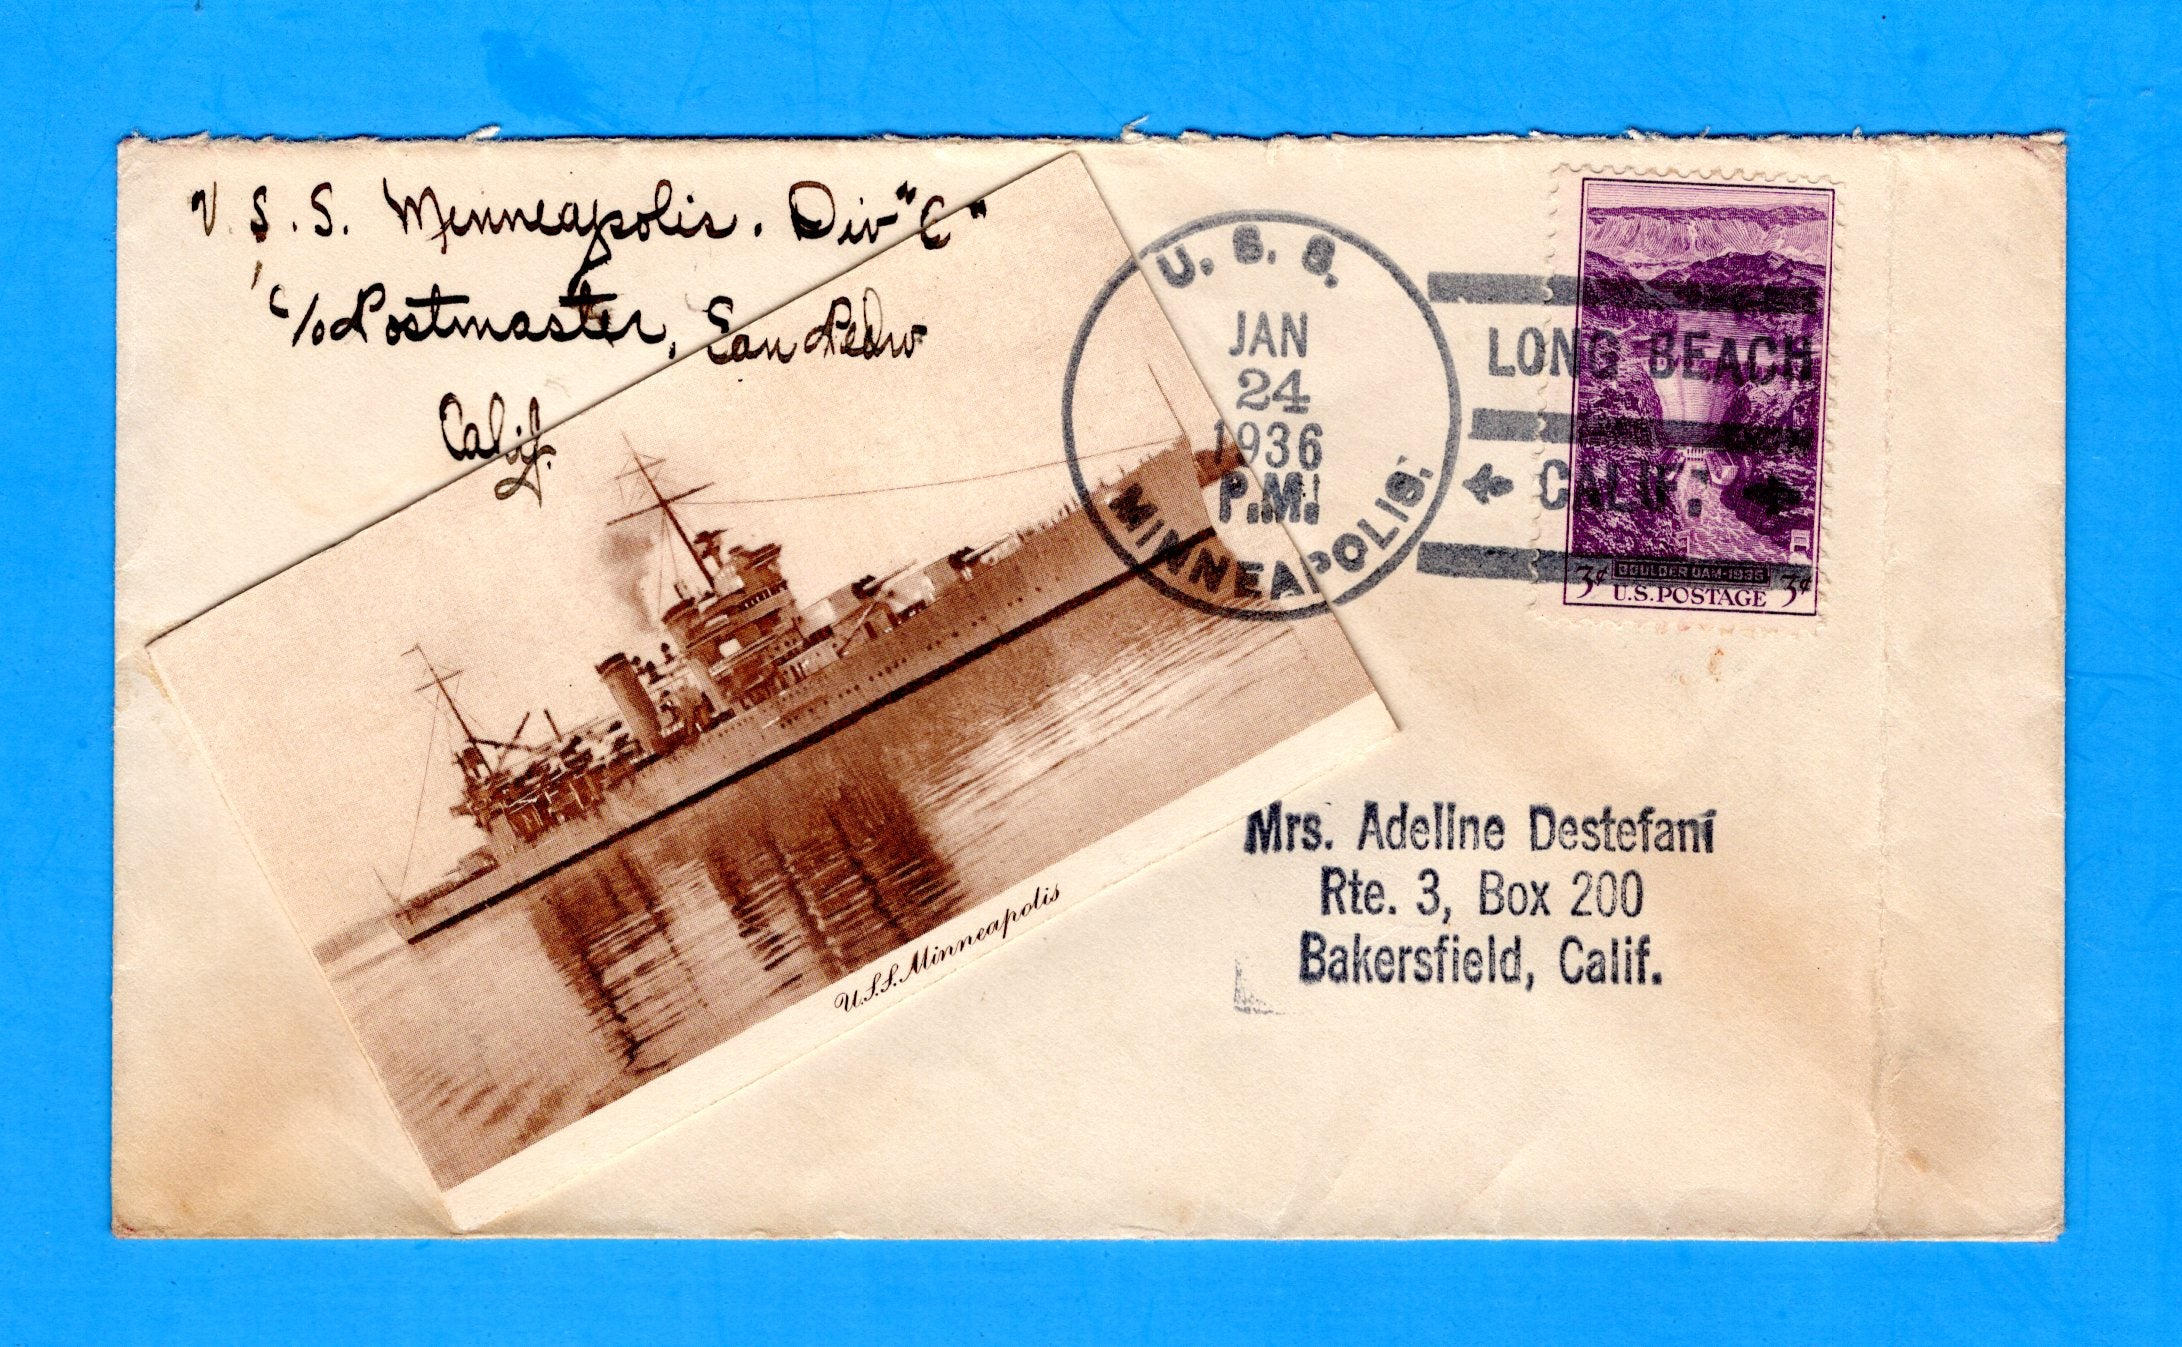 USS Minneapolis CA-36 January 24, 1936 - Added Photograph of the Minneapolis - Opened at Top